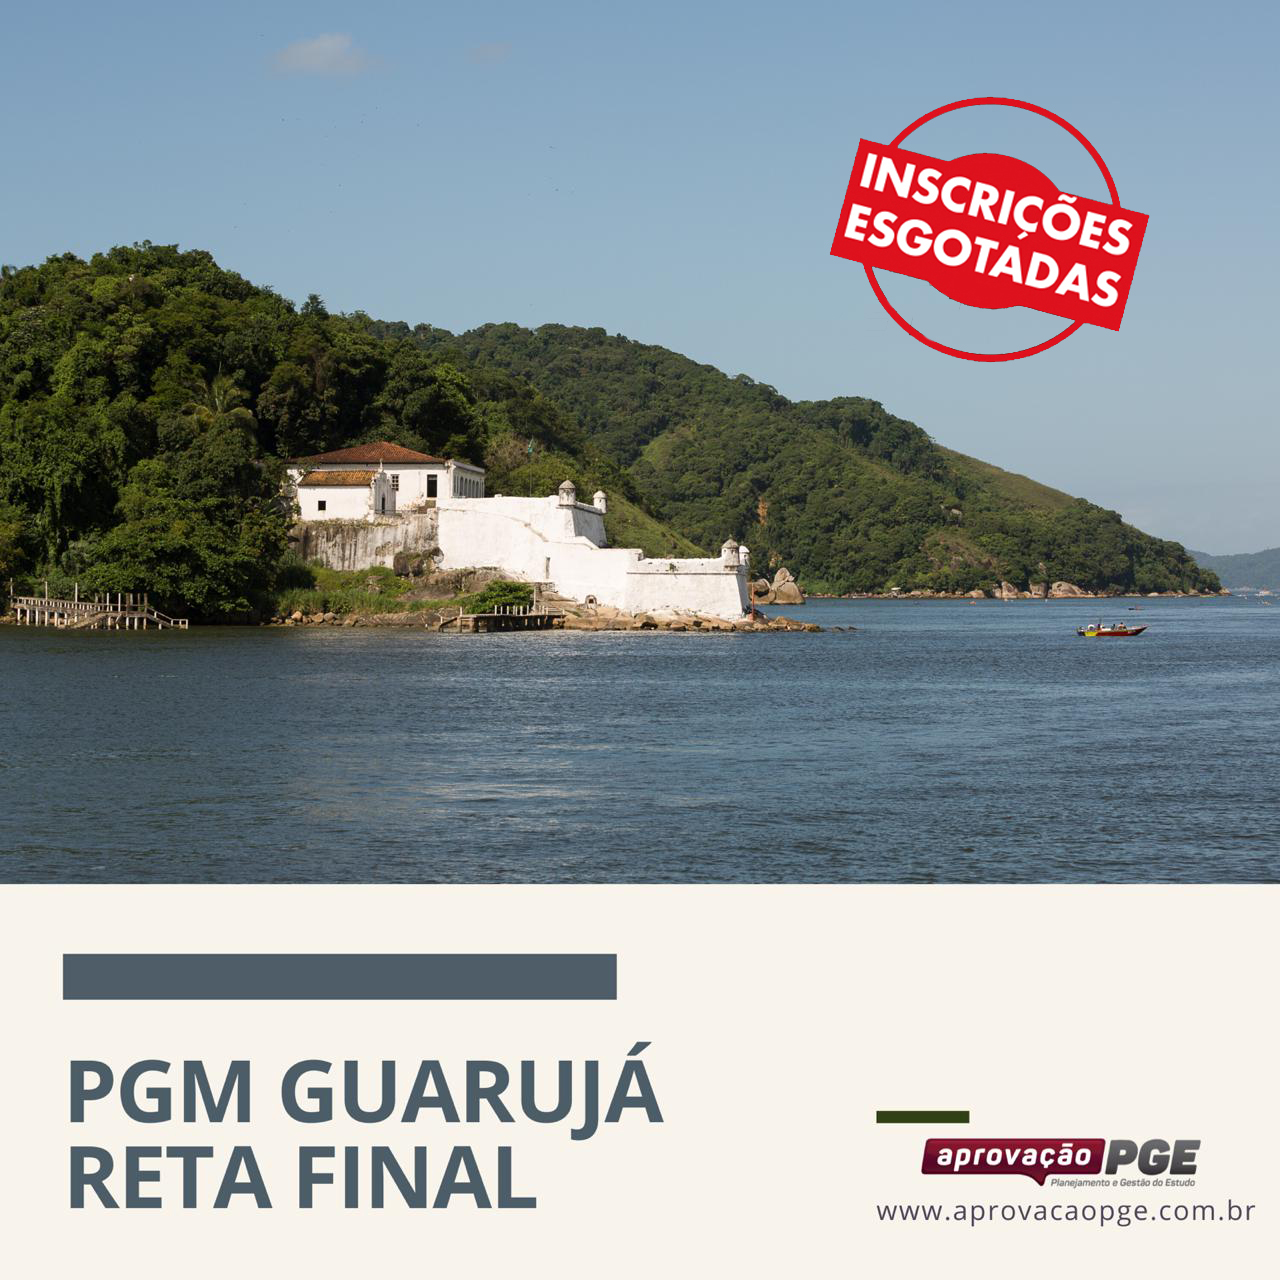 Card guaruja esgotadas